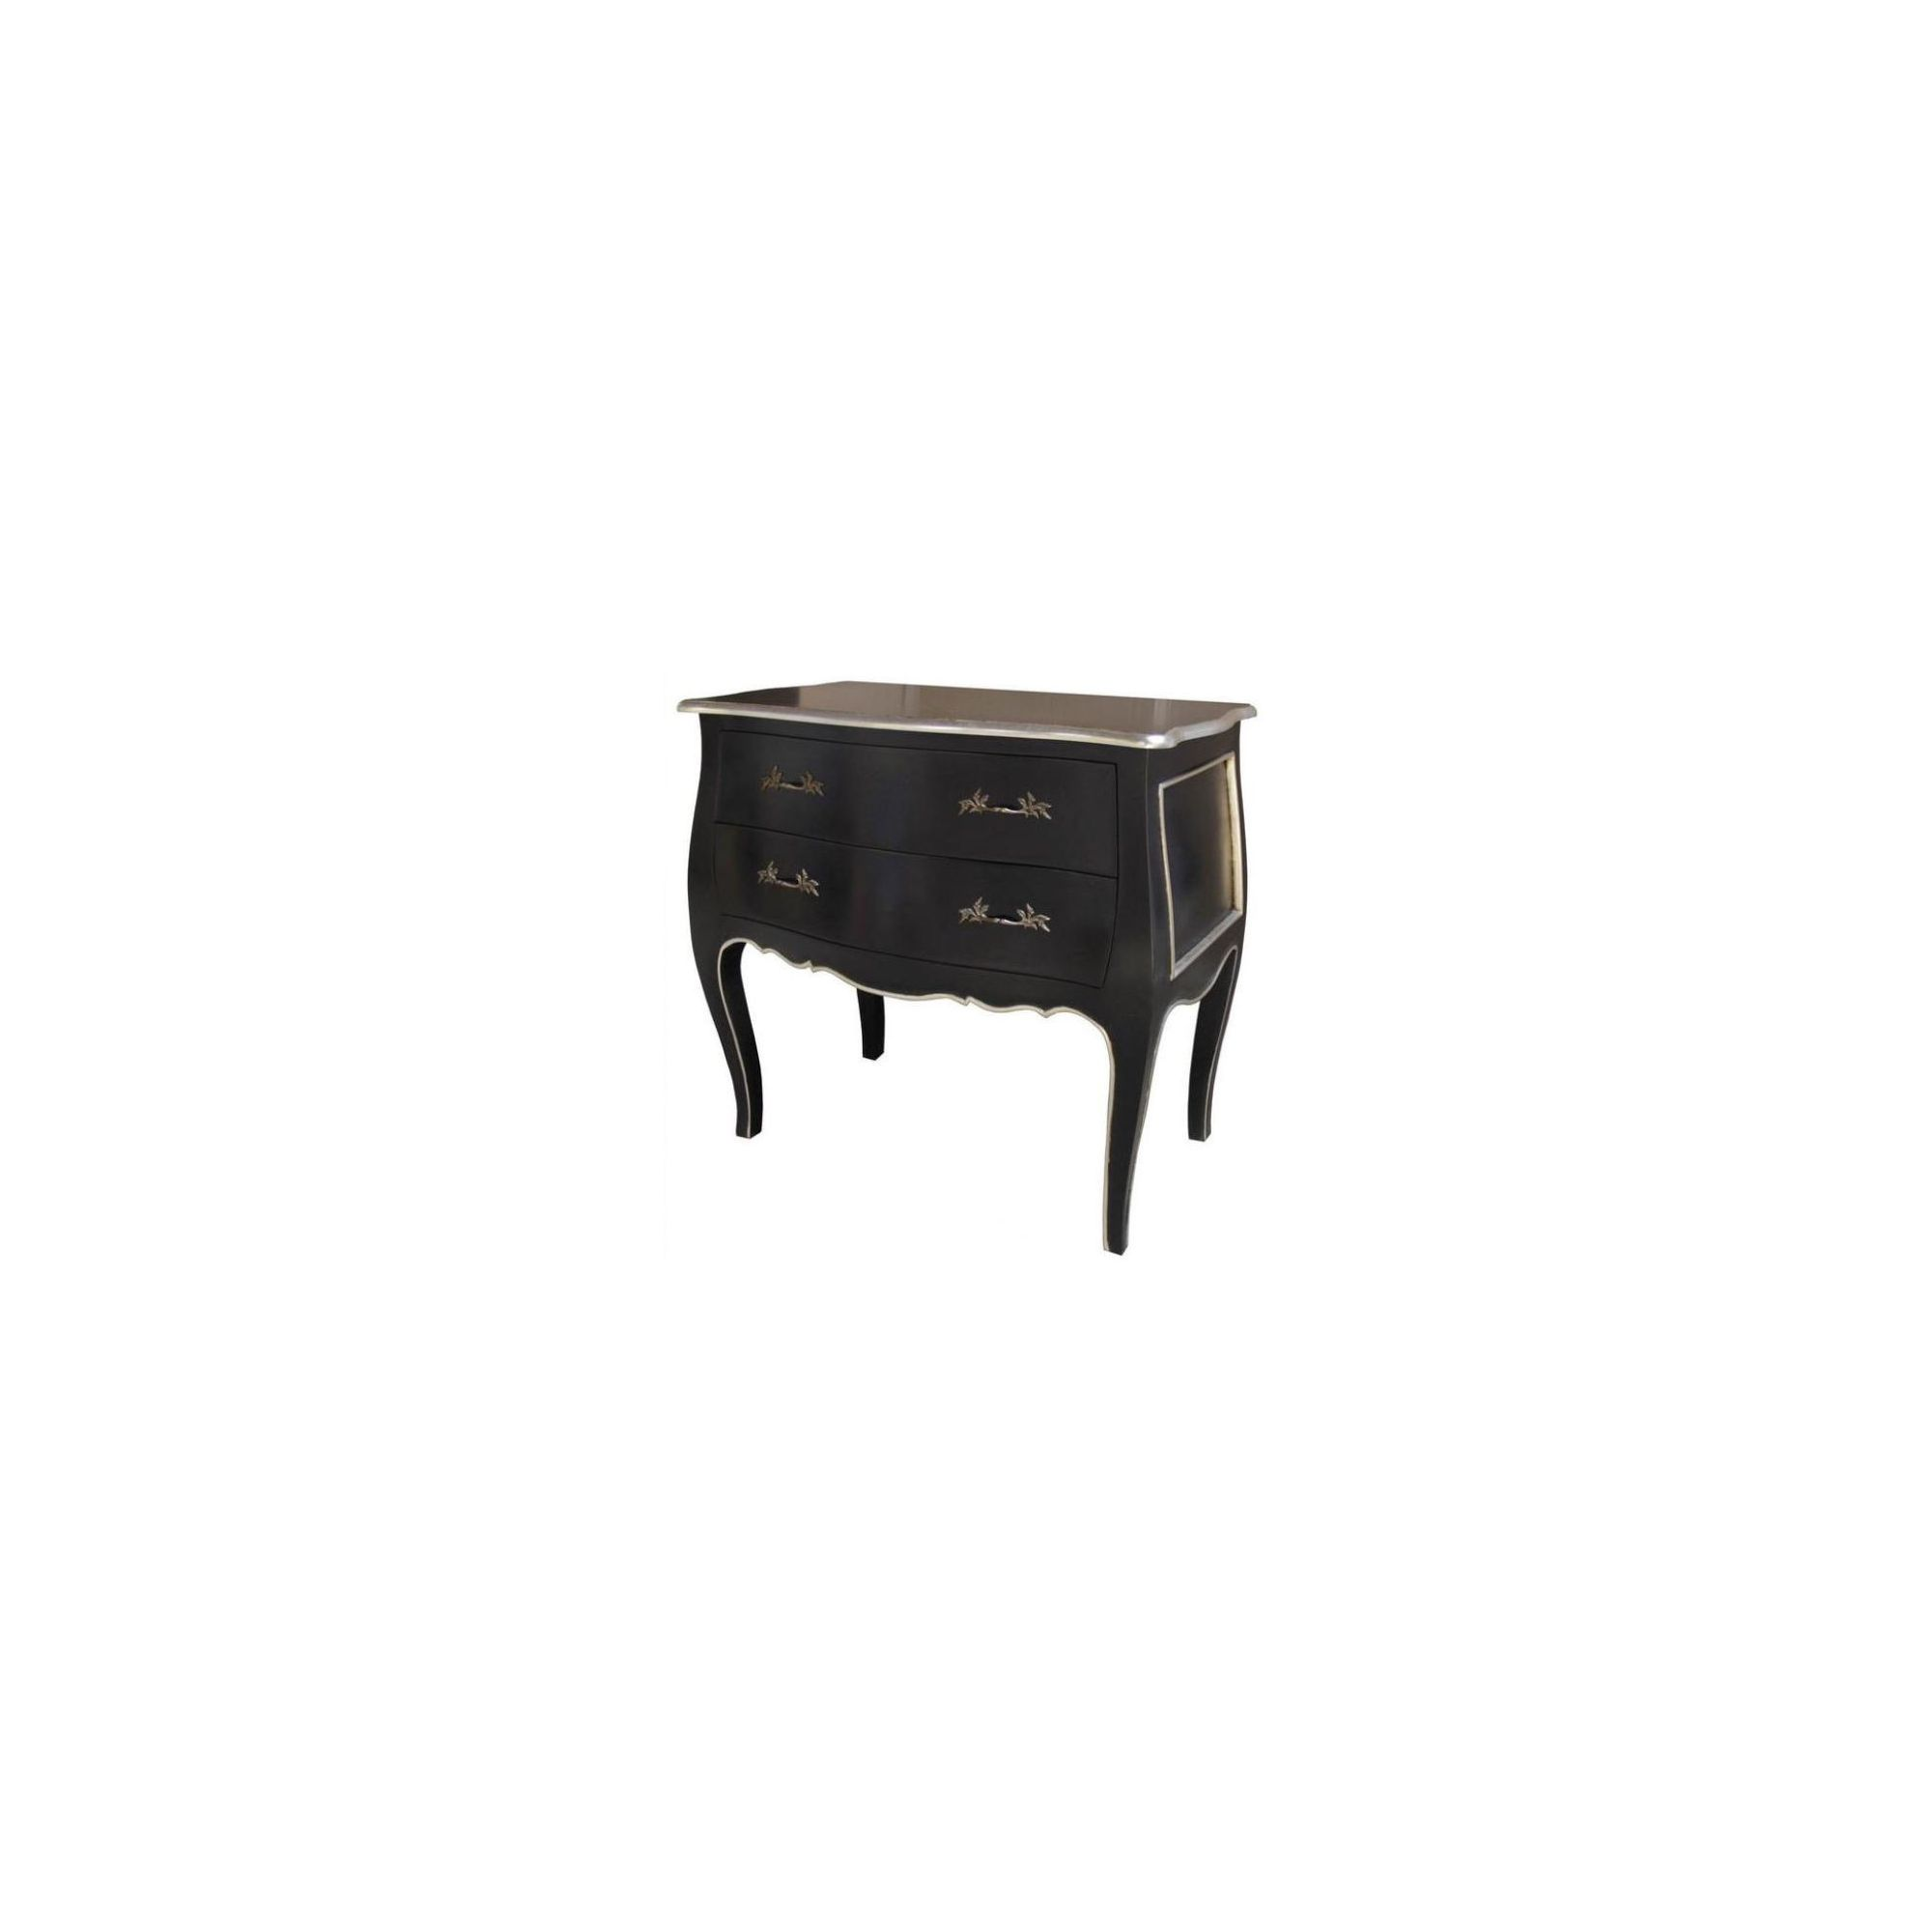 Lock stock and barrel Mahogany Bombe Chest in Mahogany - Black at Tesco Direct